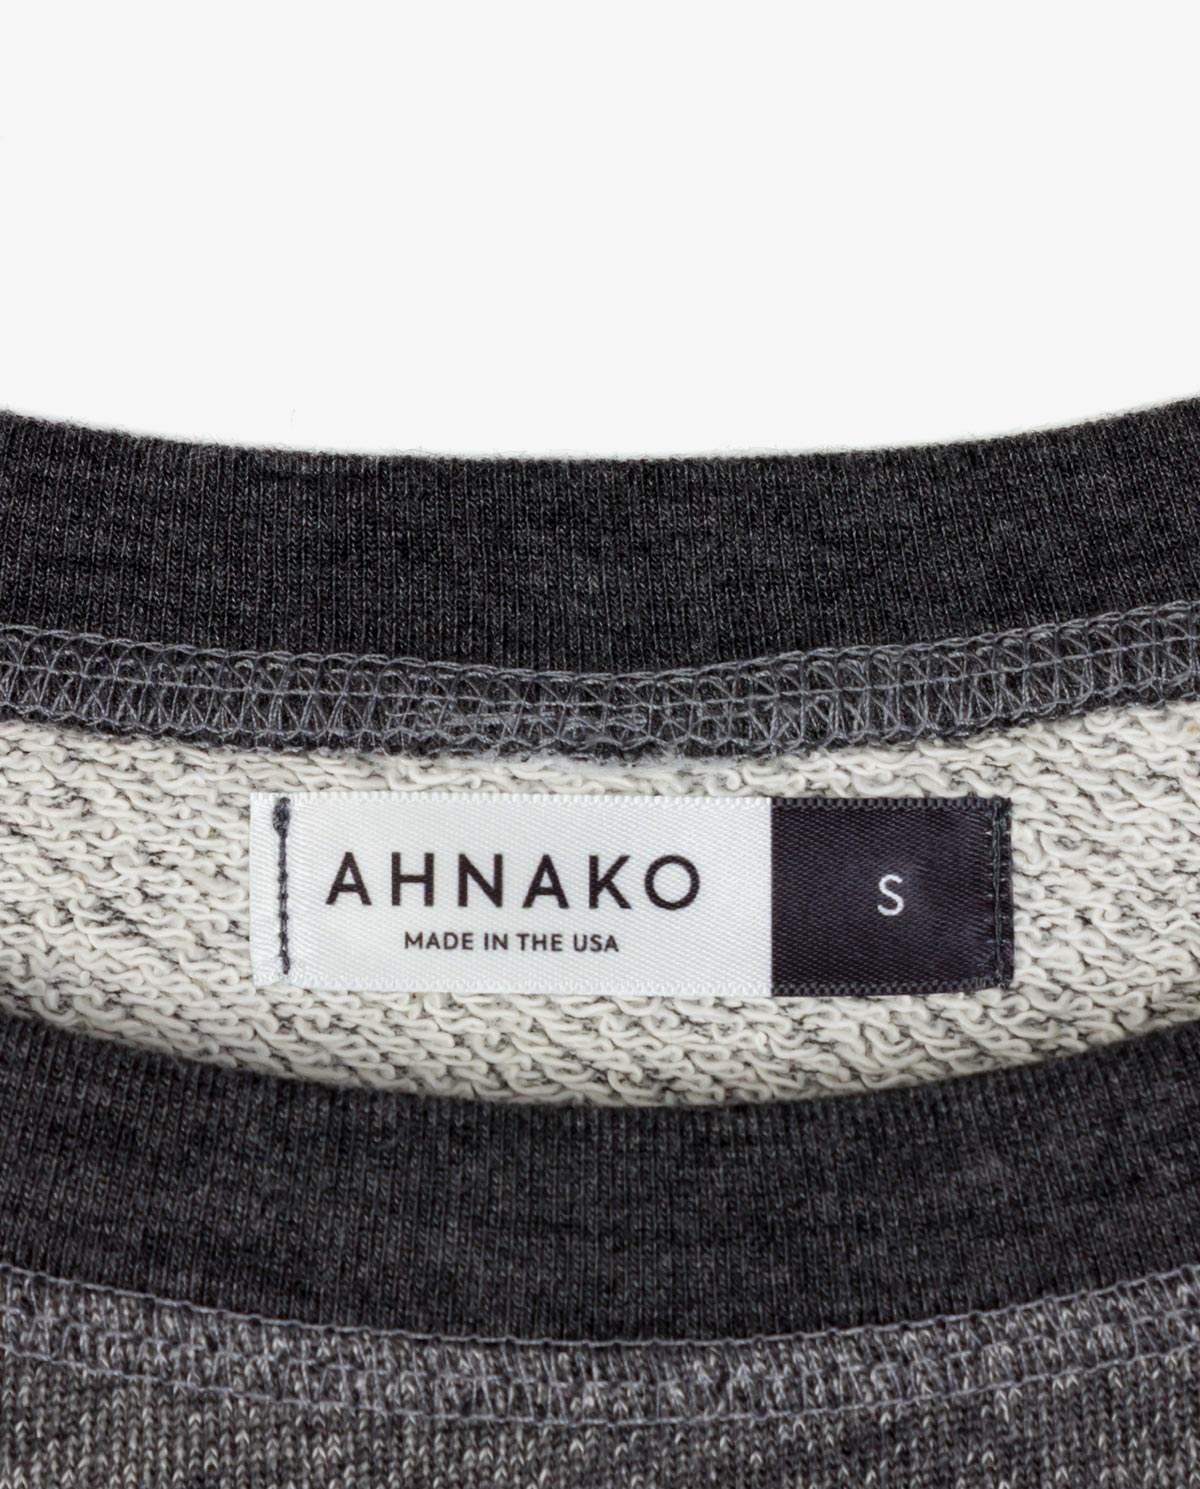 Ahnako Women's French Terry Boat Neck Sweater with Logo Patch - Grey - Clothing Tag